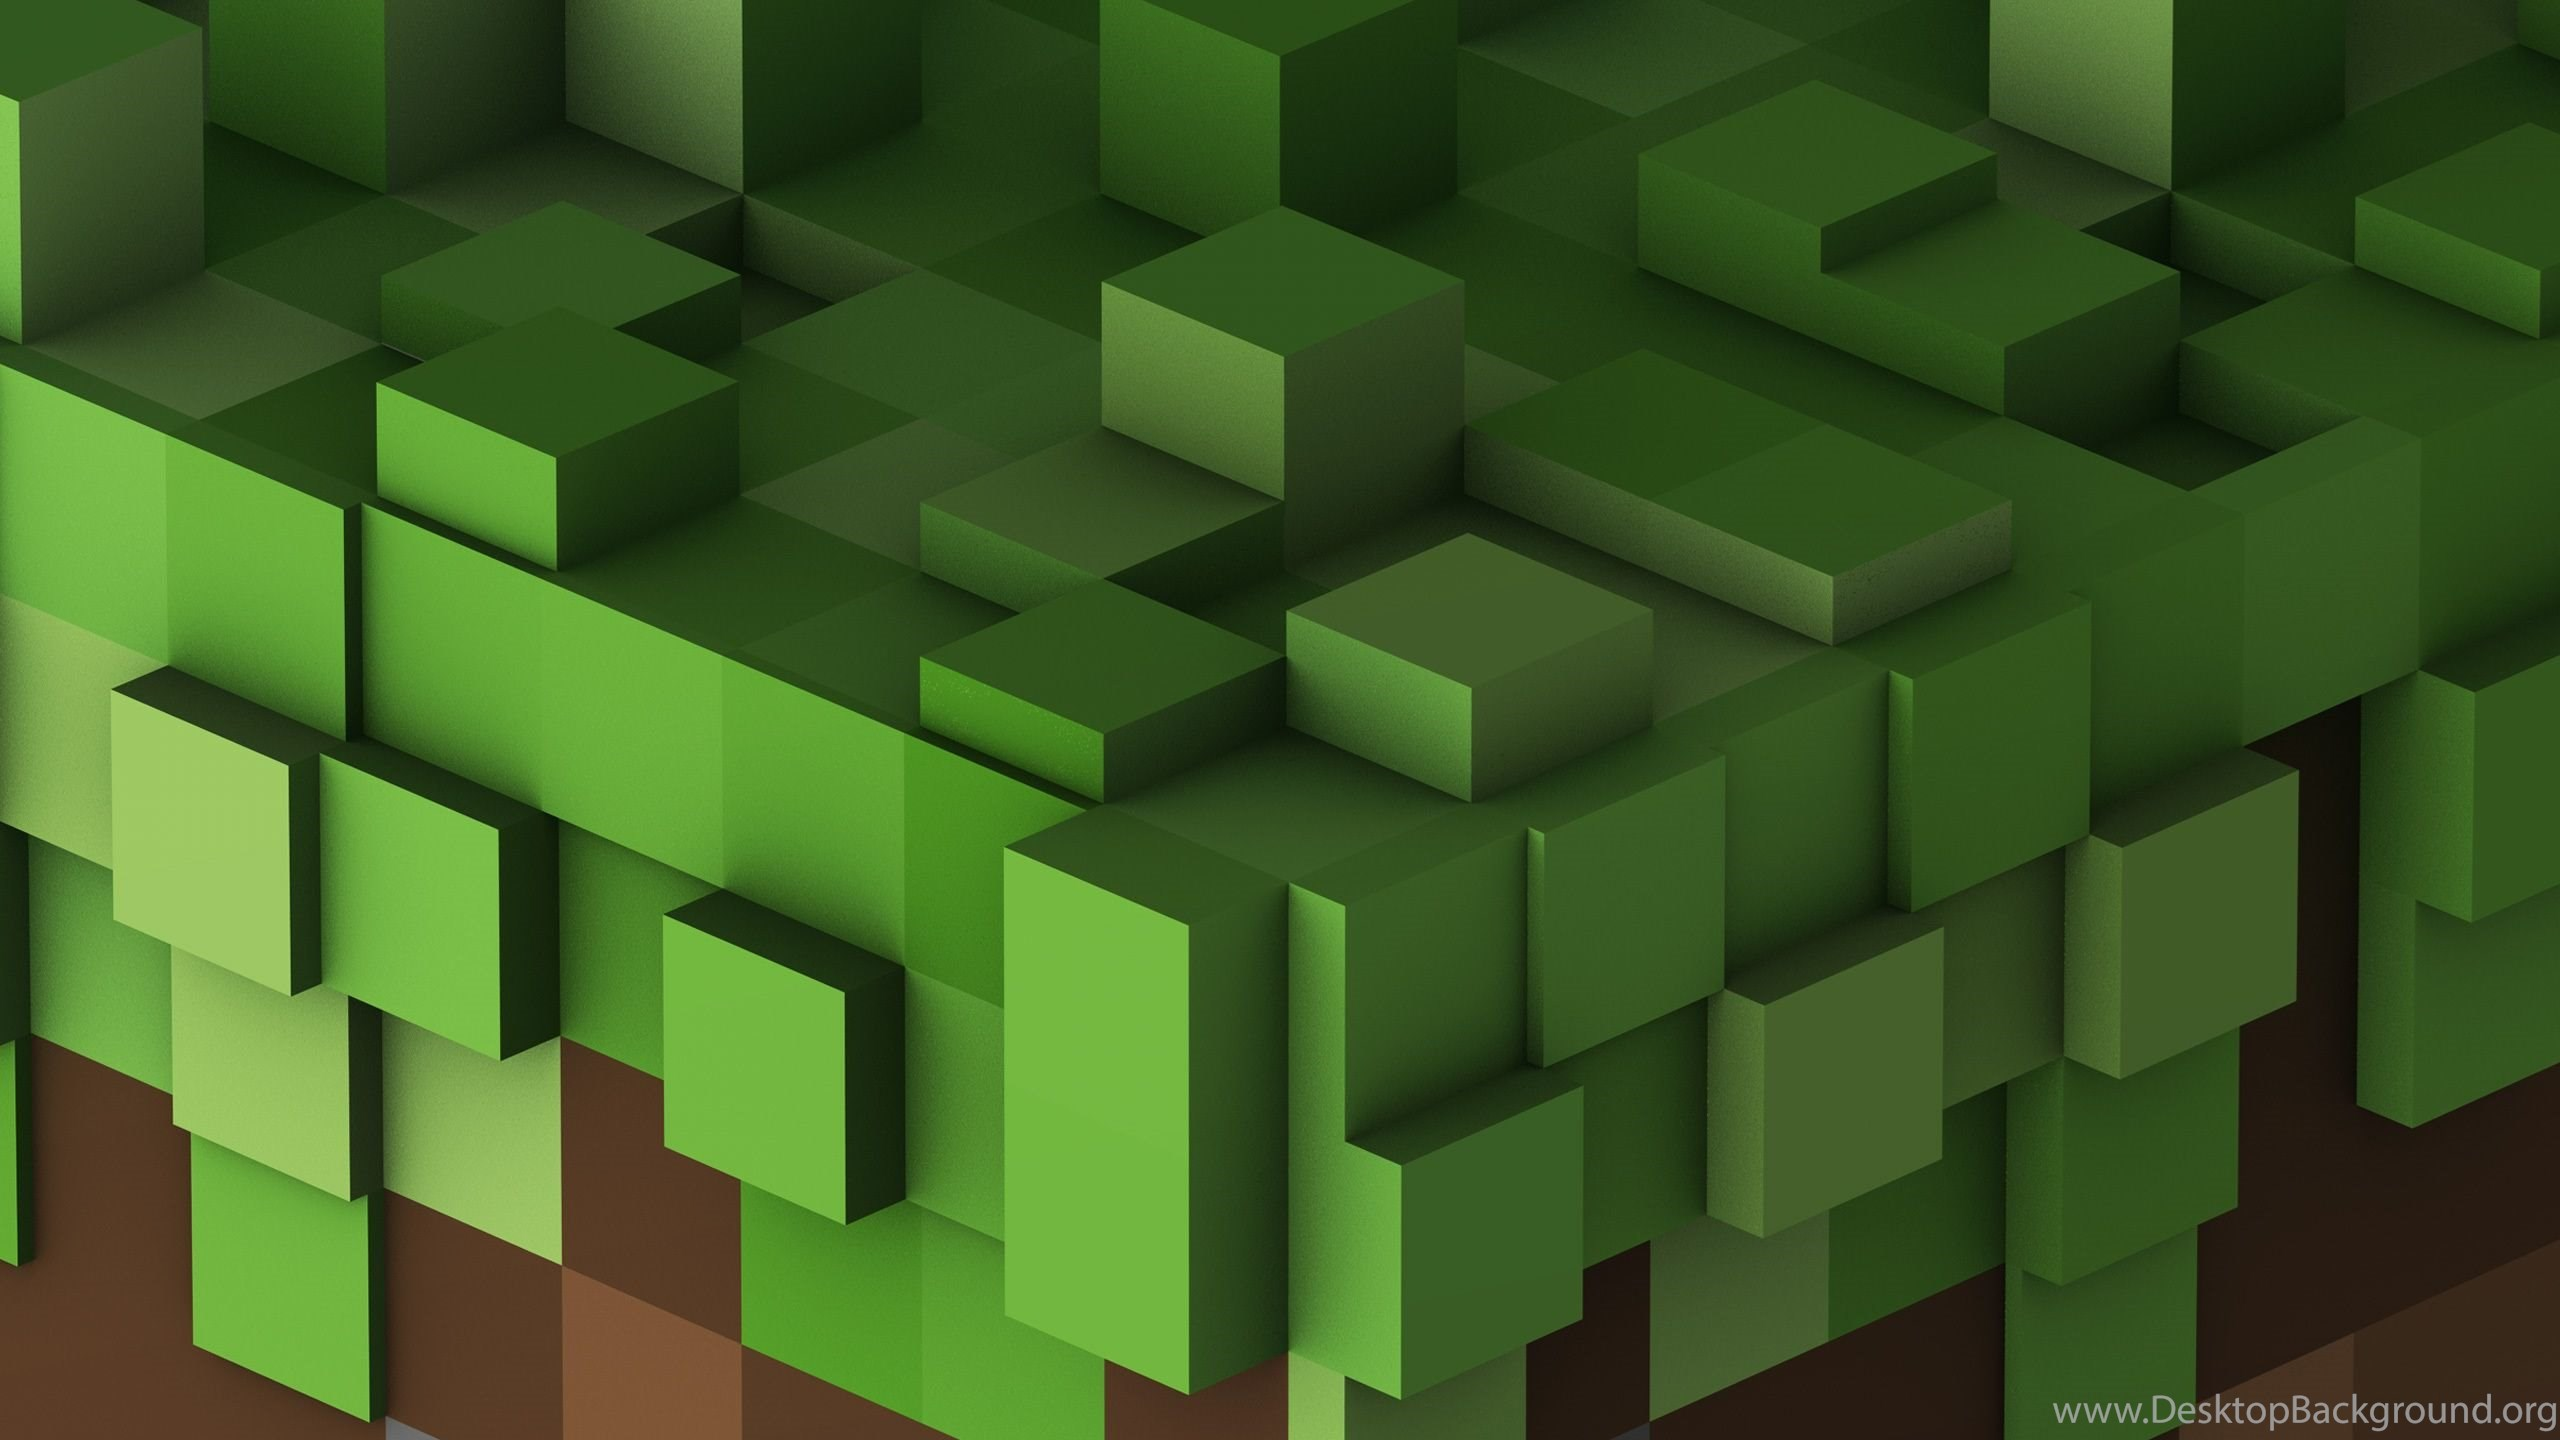 Amazing Wallpaper Minecraft Android - 233_minecraft-wallpapers-hd-ipad_2560x1600_h  Trends_60999.jpg